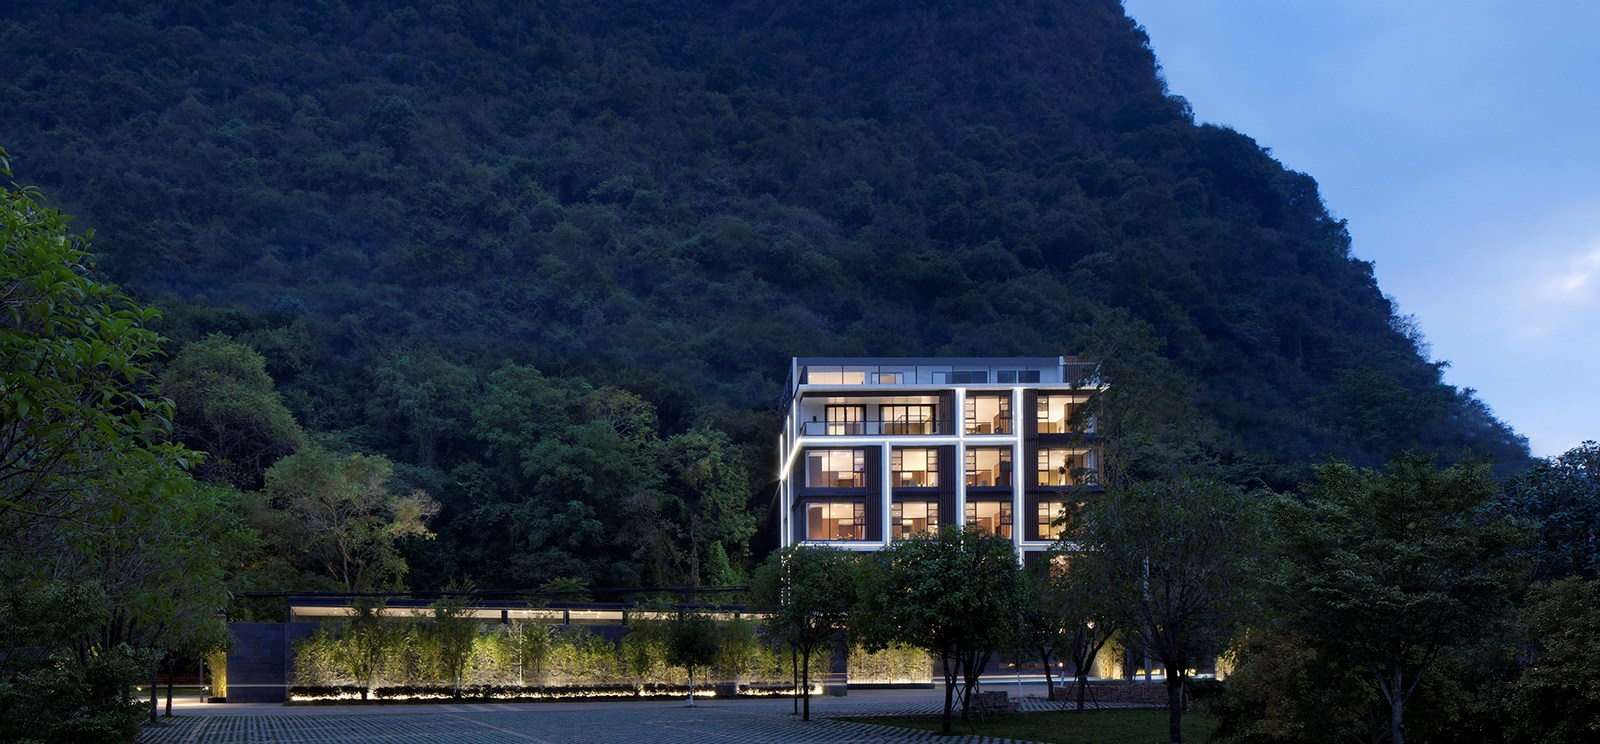 Blossom Dreams Hotel (Jima) By Co-Direction Design - Sheet10